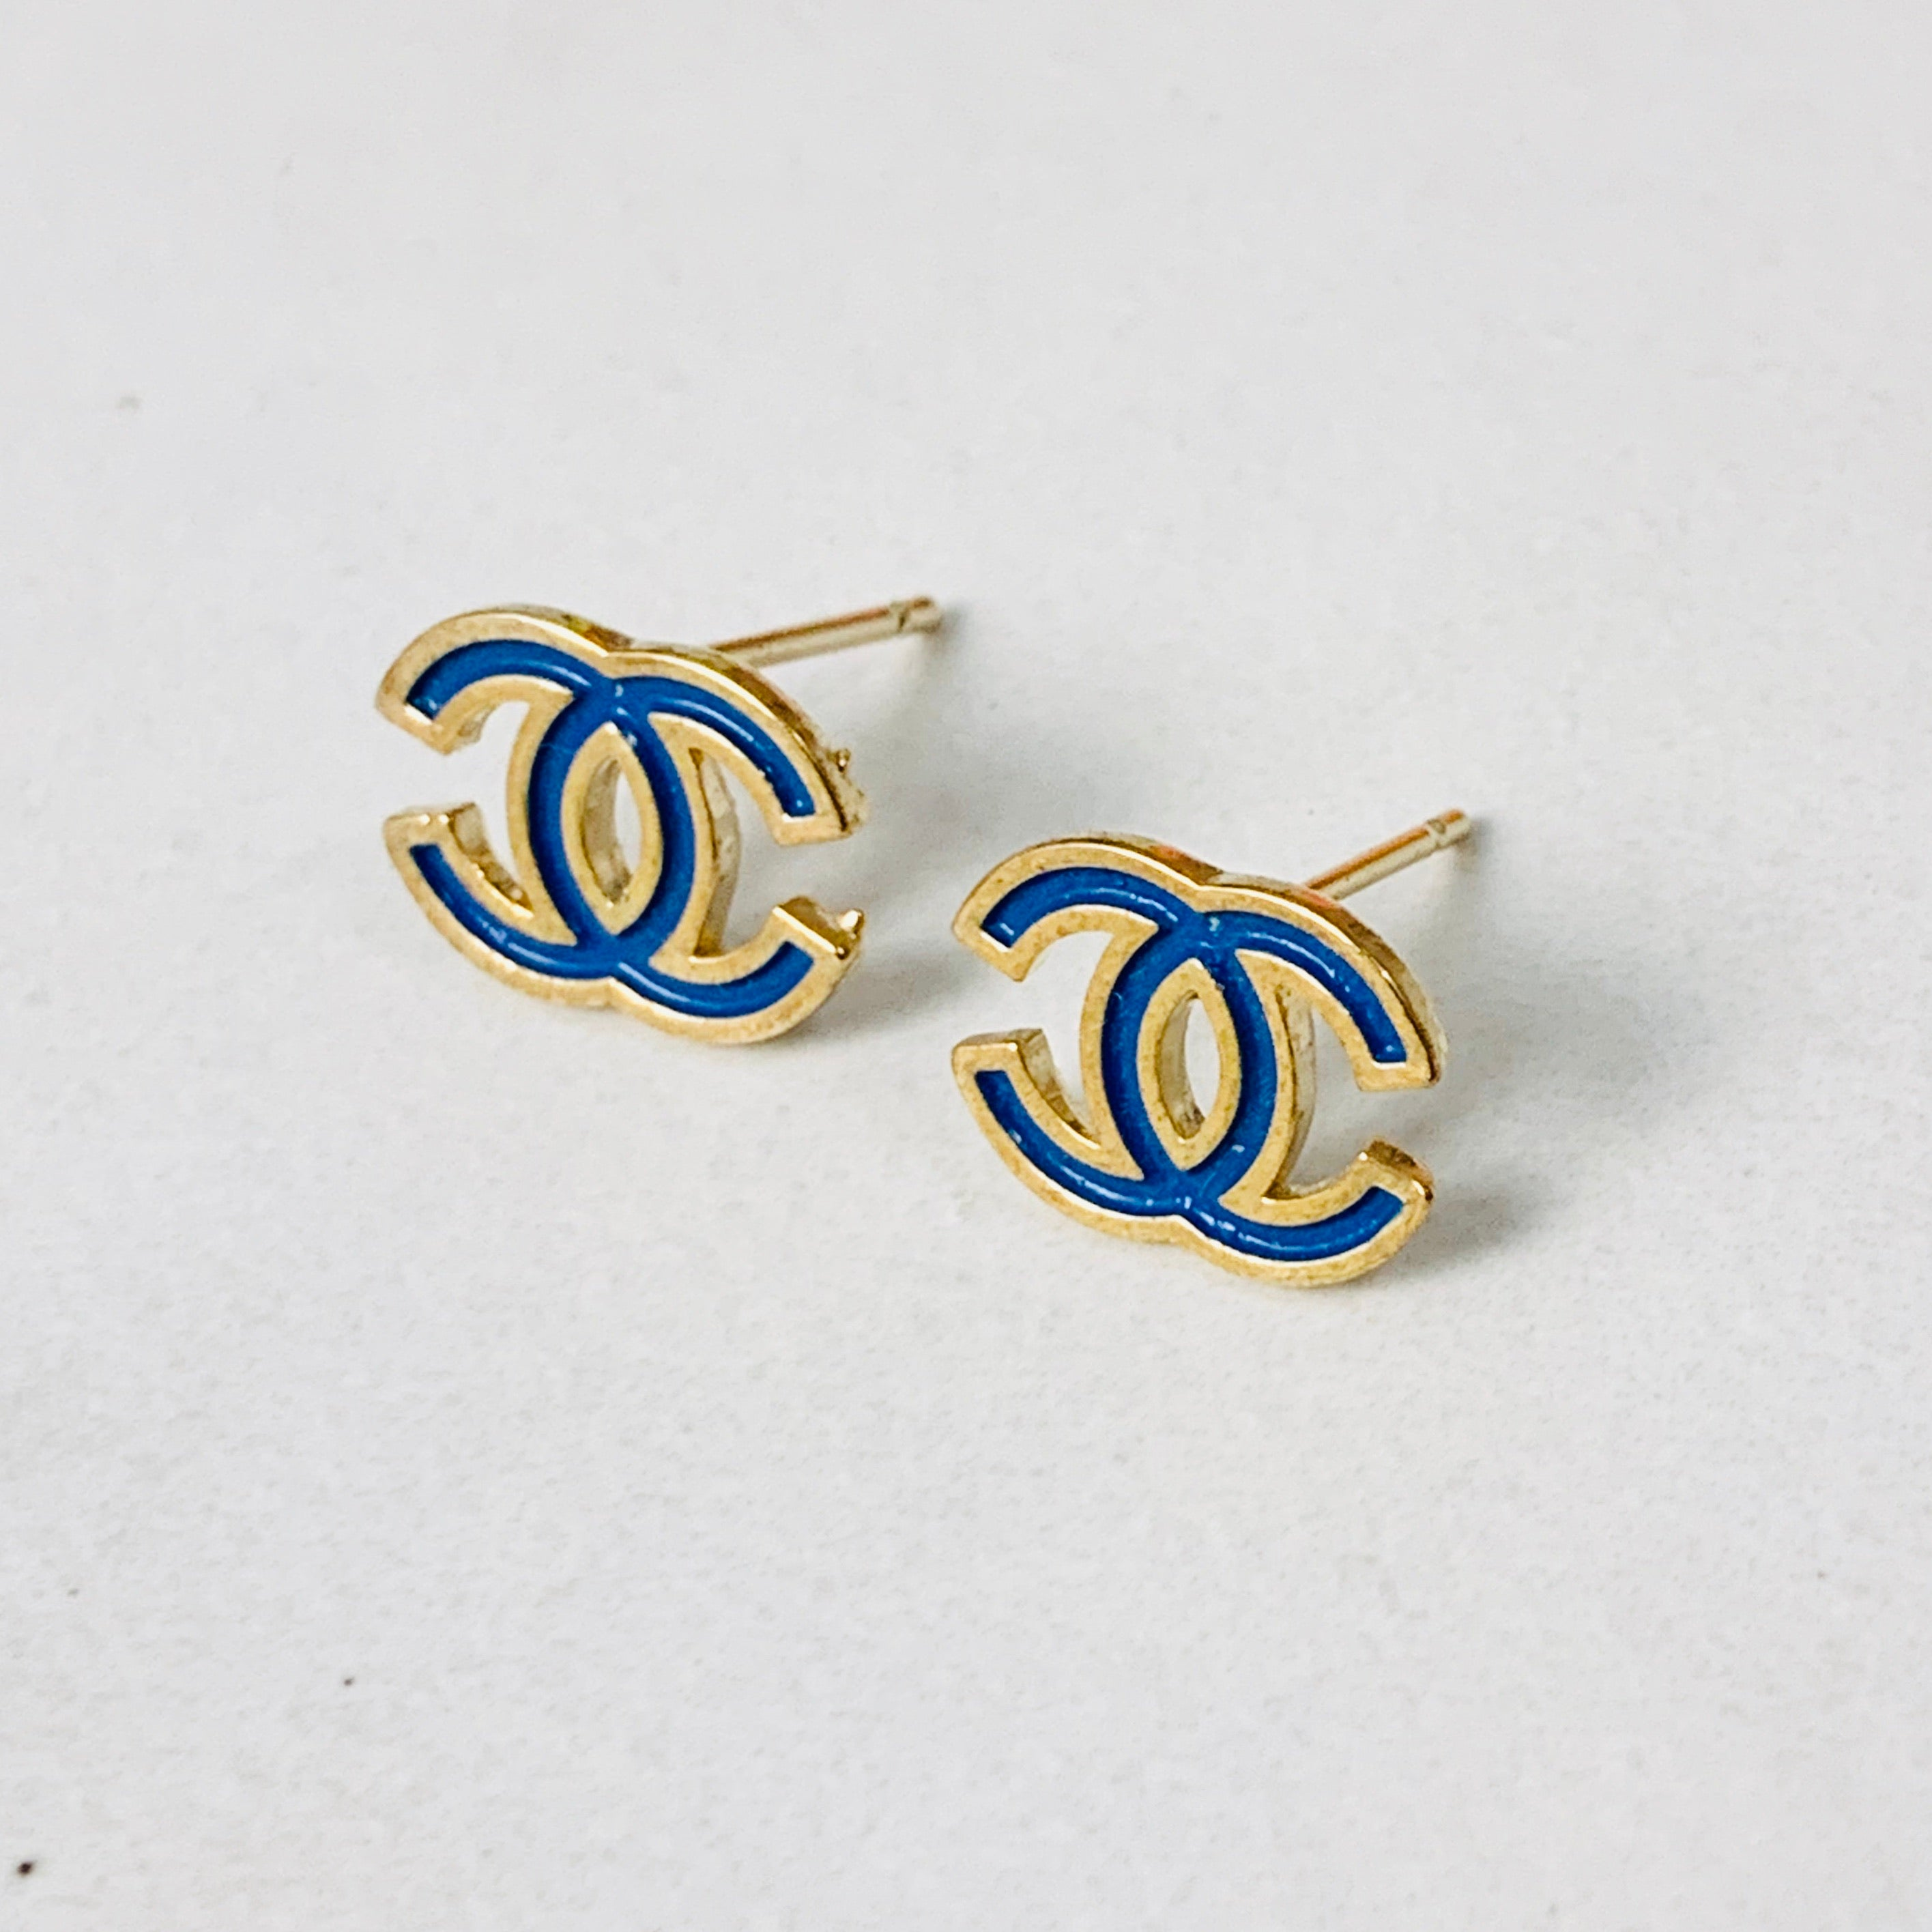 CC Blue/Gold Stud Earrings